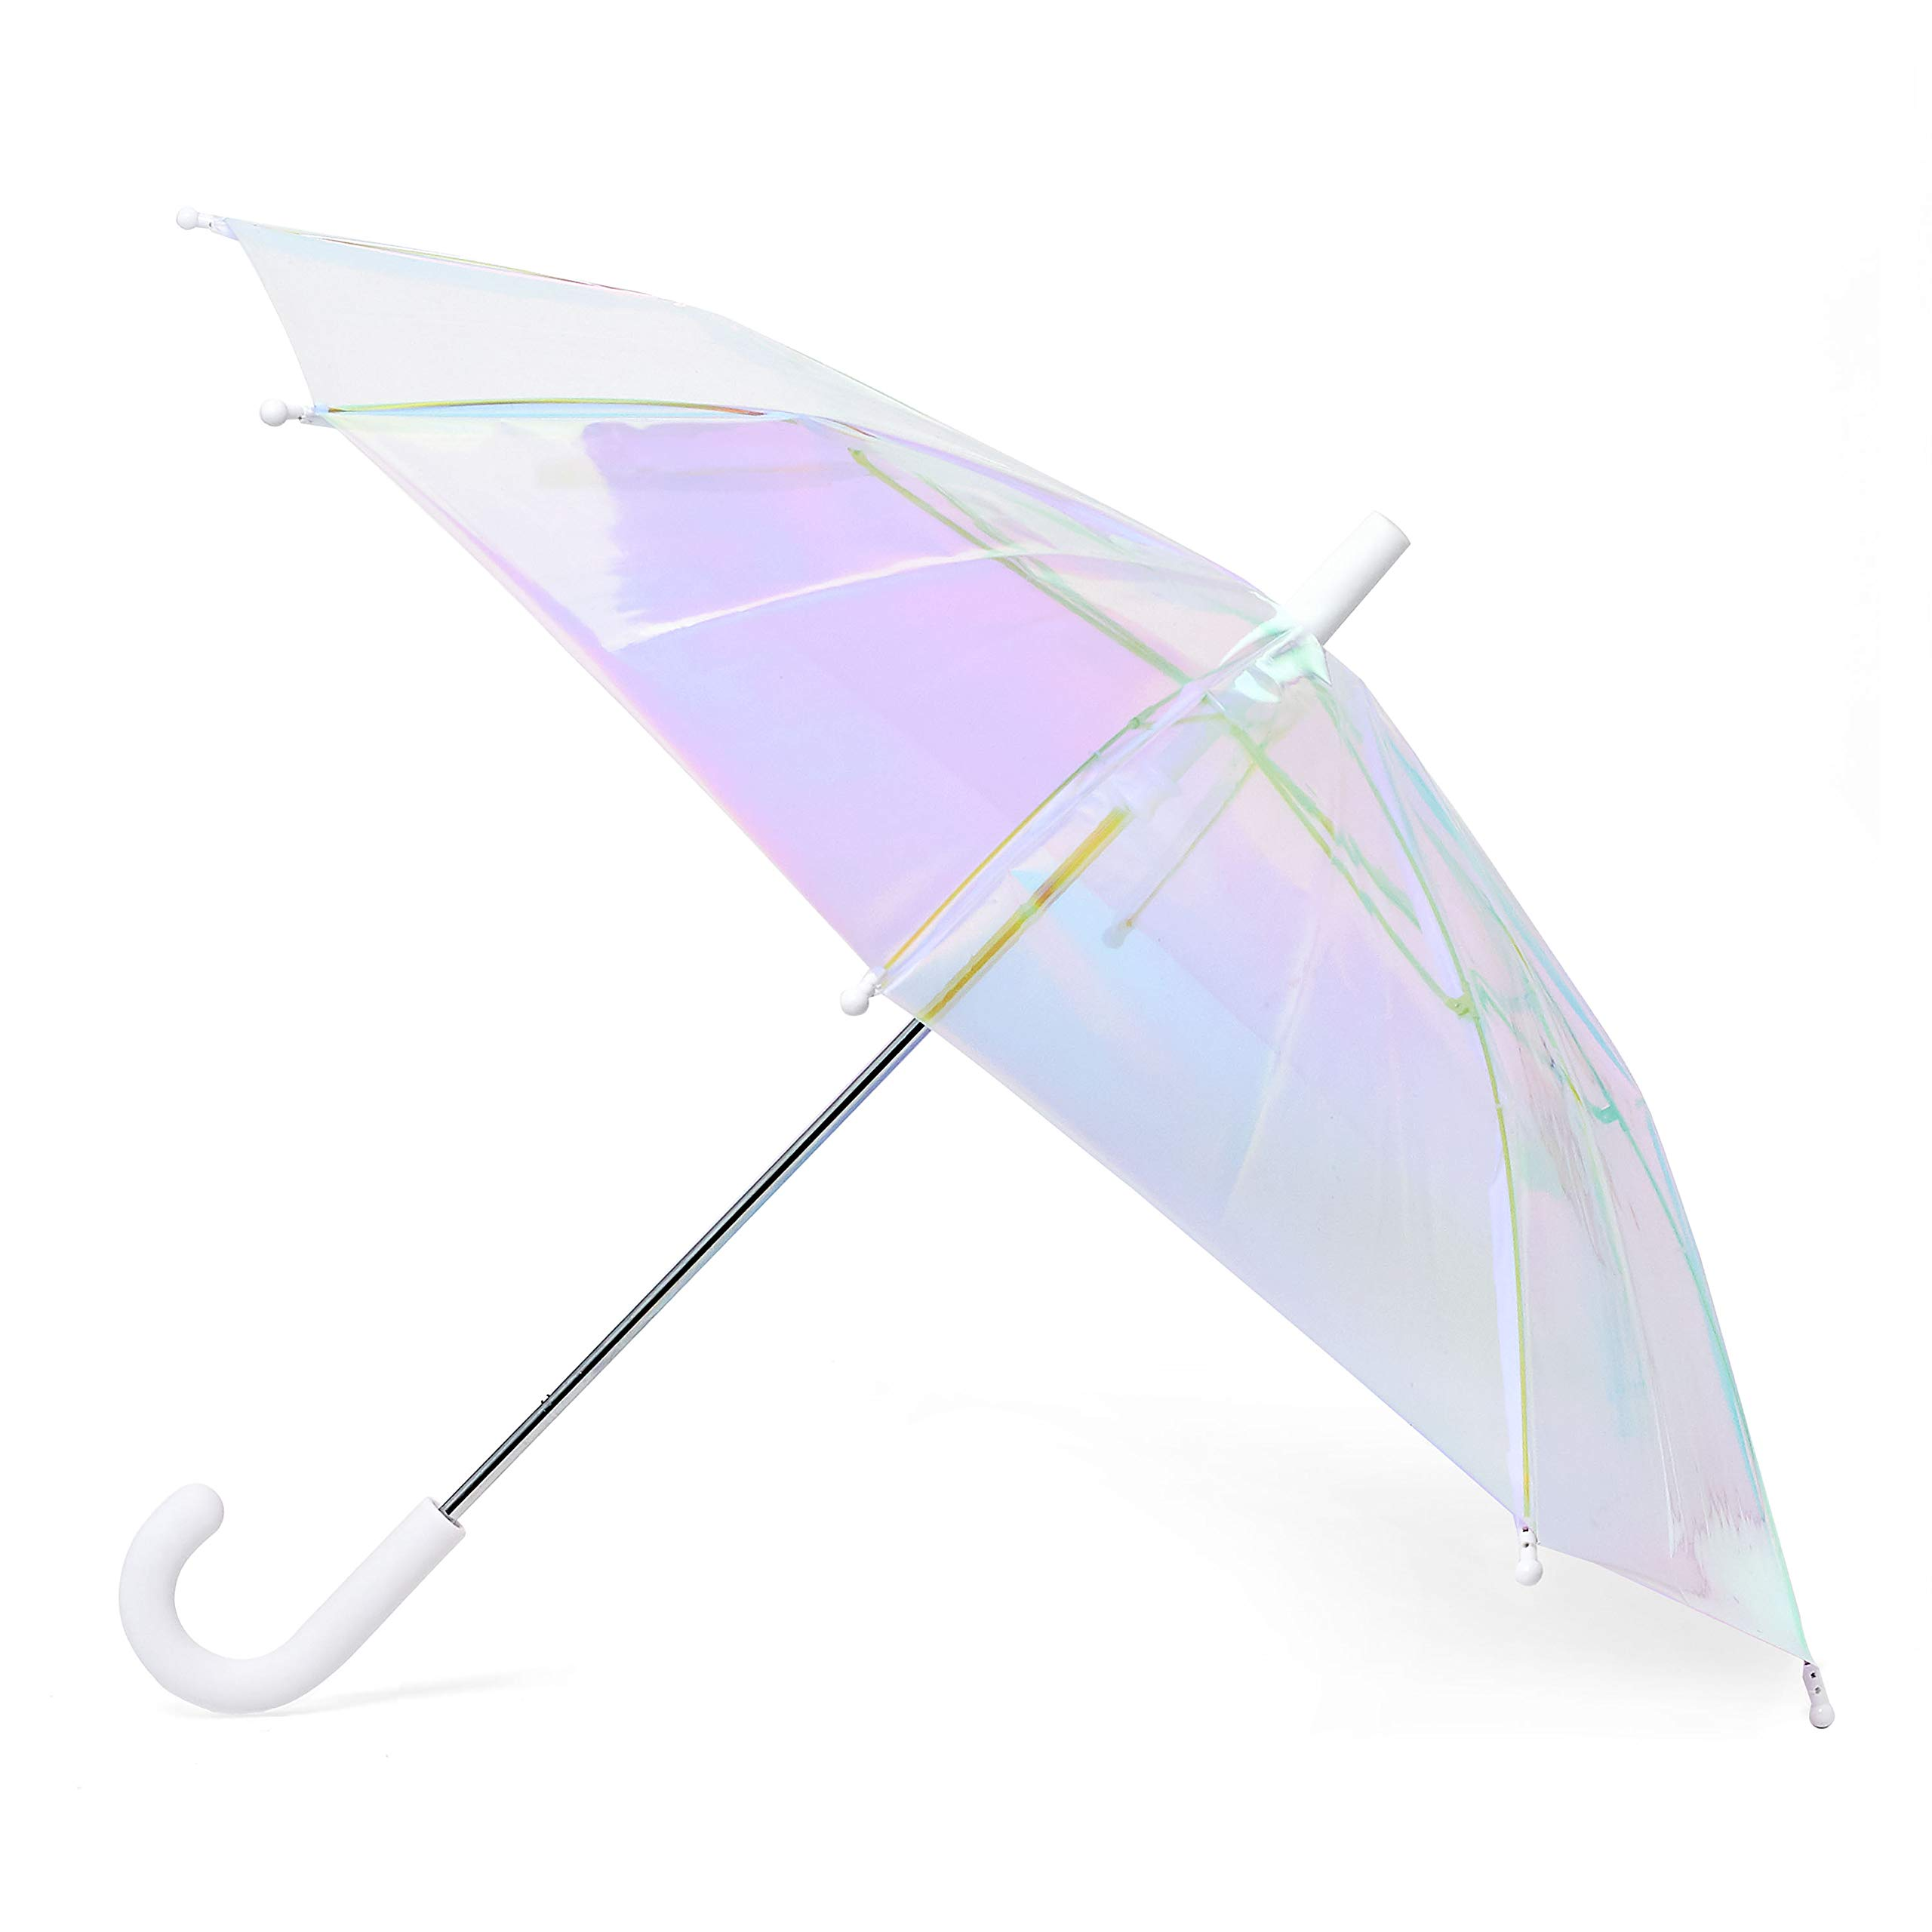 FCTRY Holo Umbrella, Iridescent Holographic Clear, 46 Inch Wide, White by FCTRY